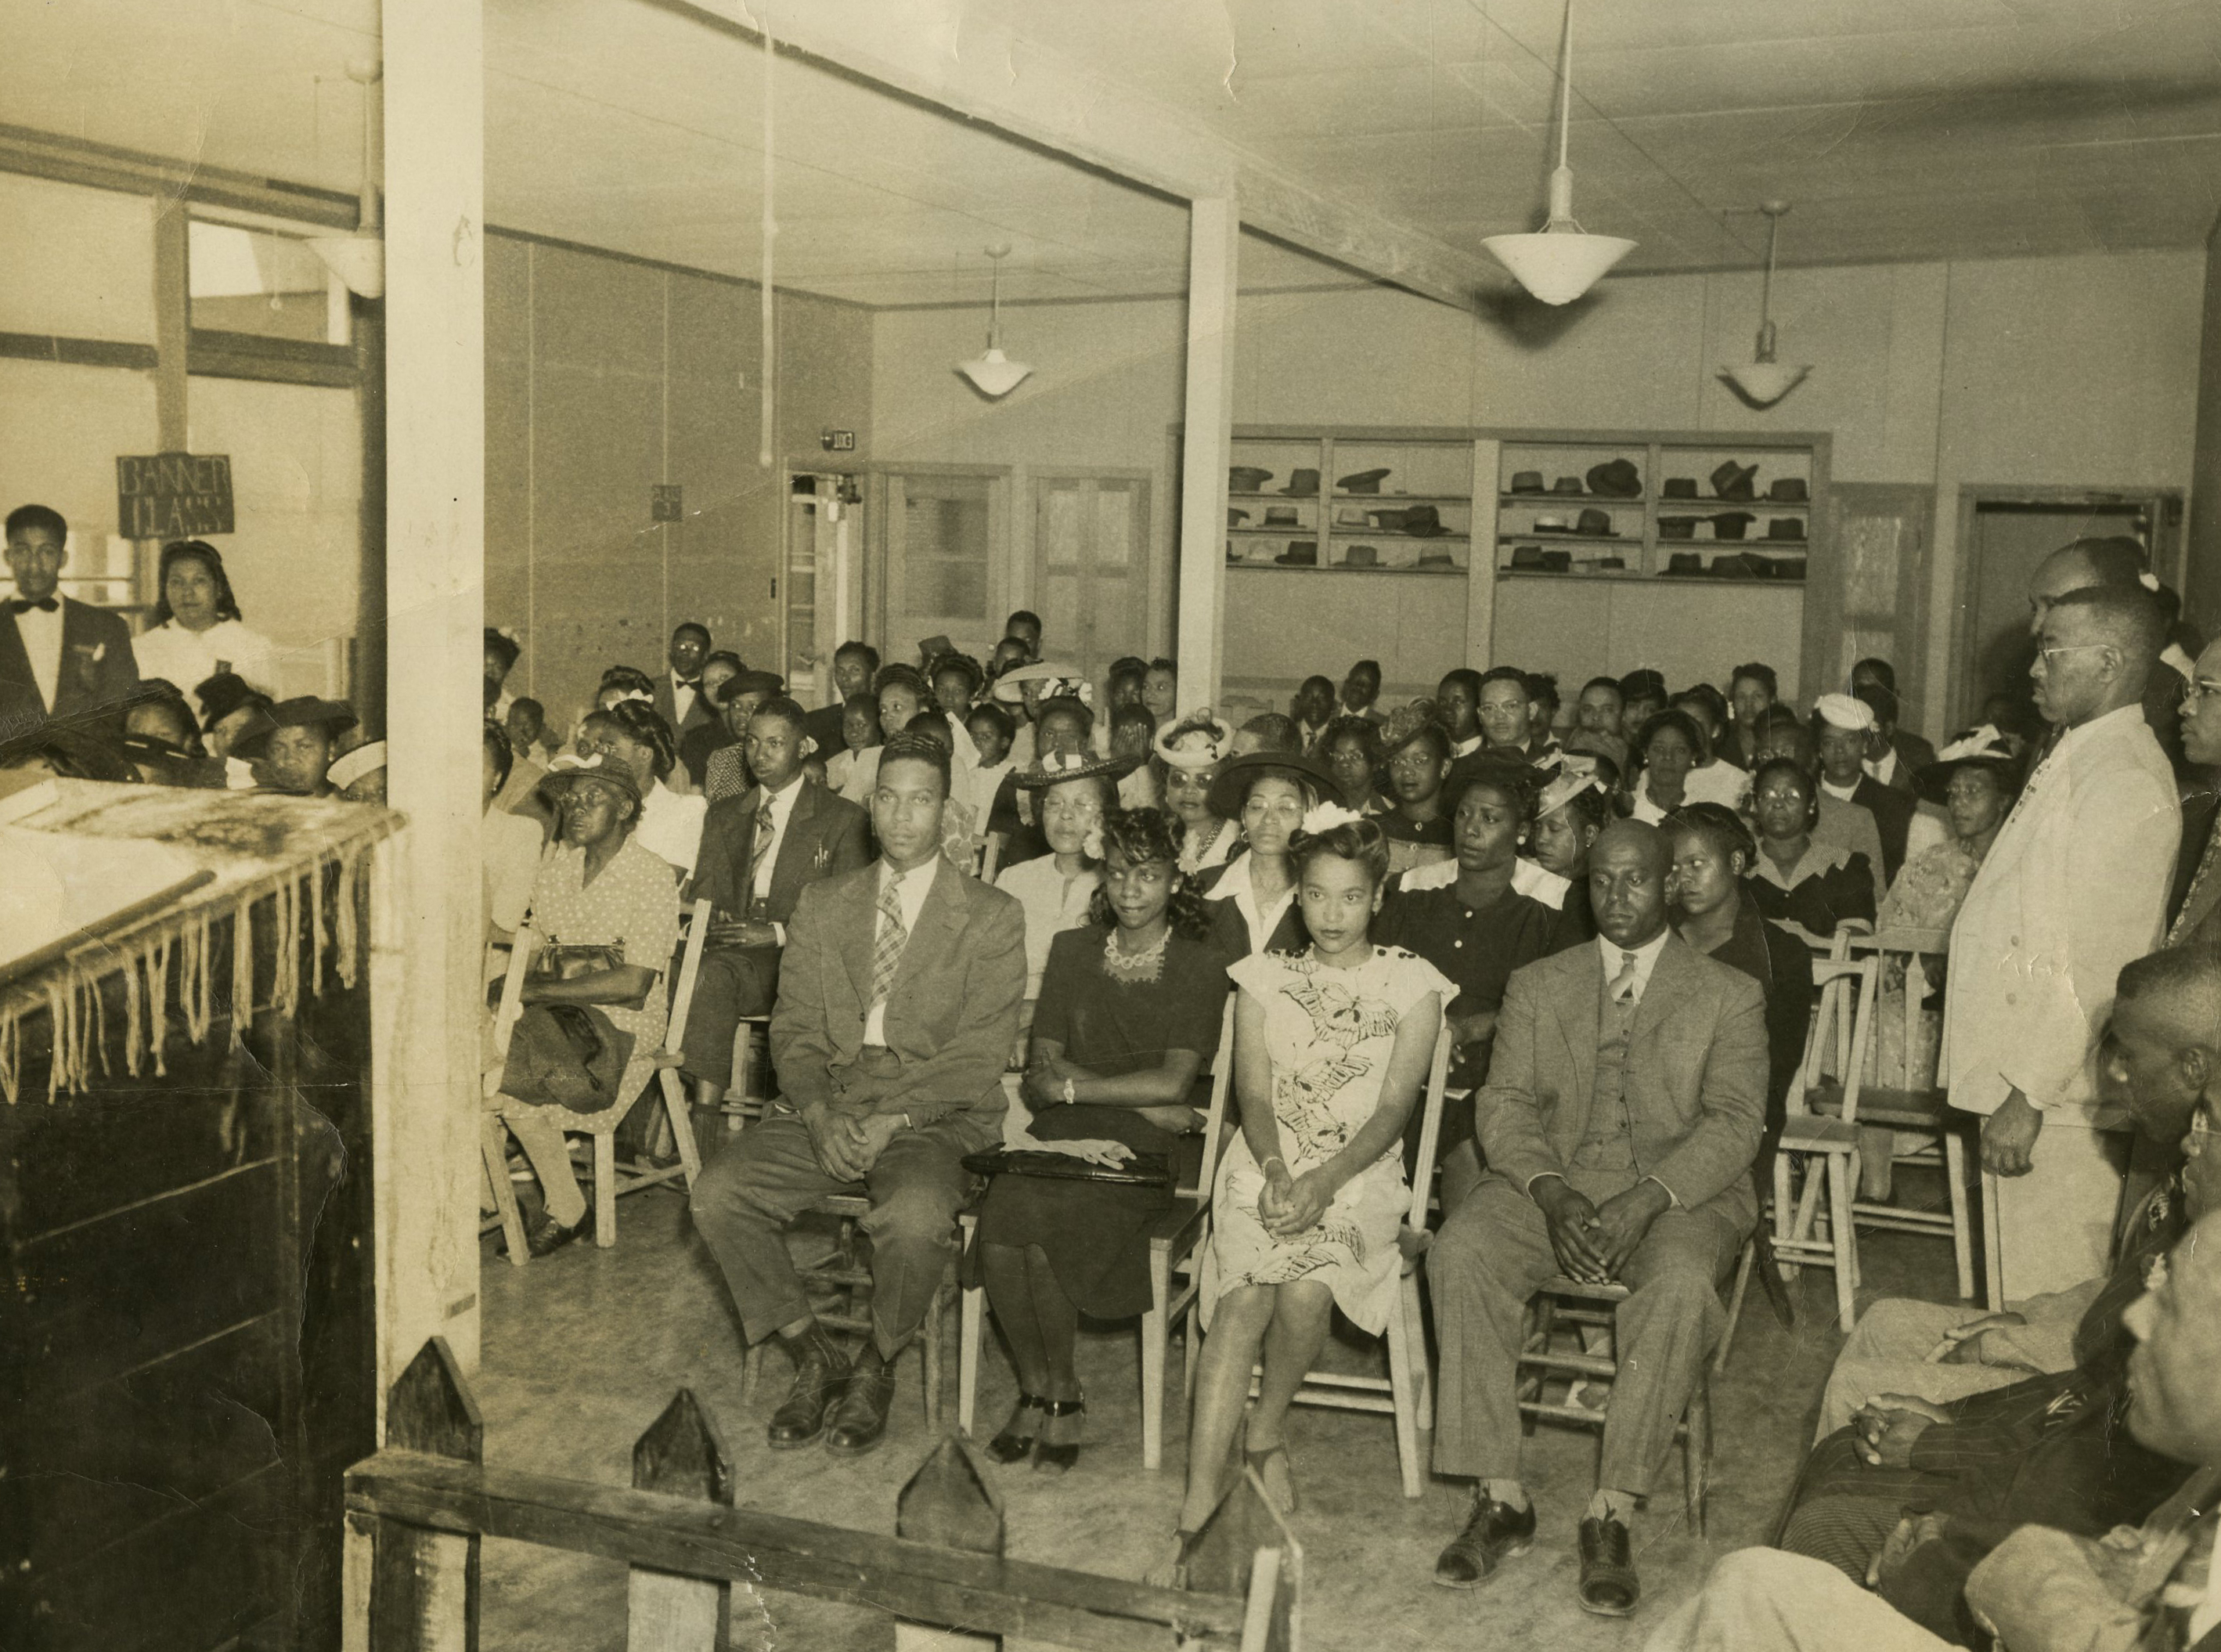 O.B. Williams holds a service at Burton Homes 1945